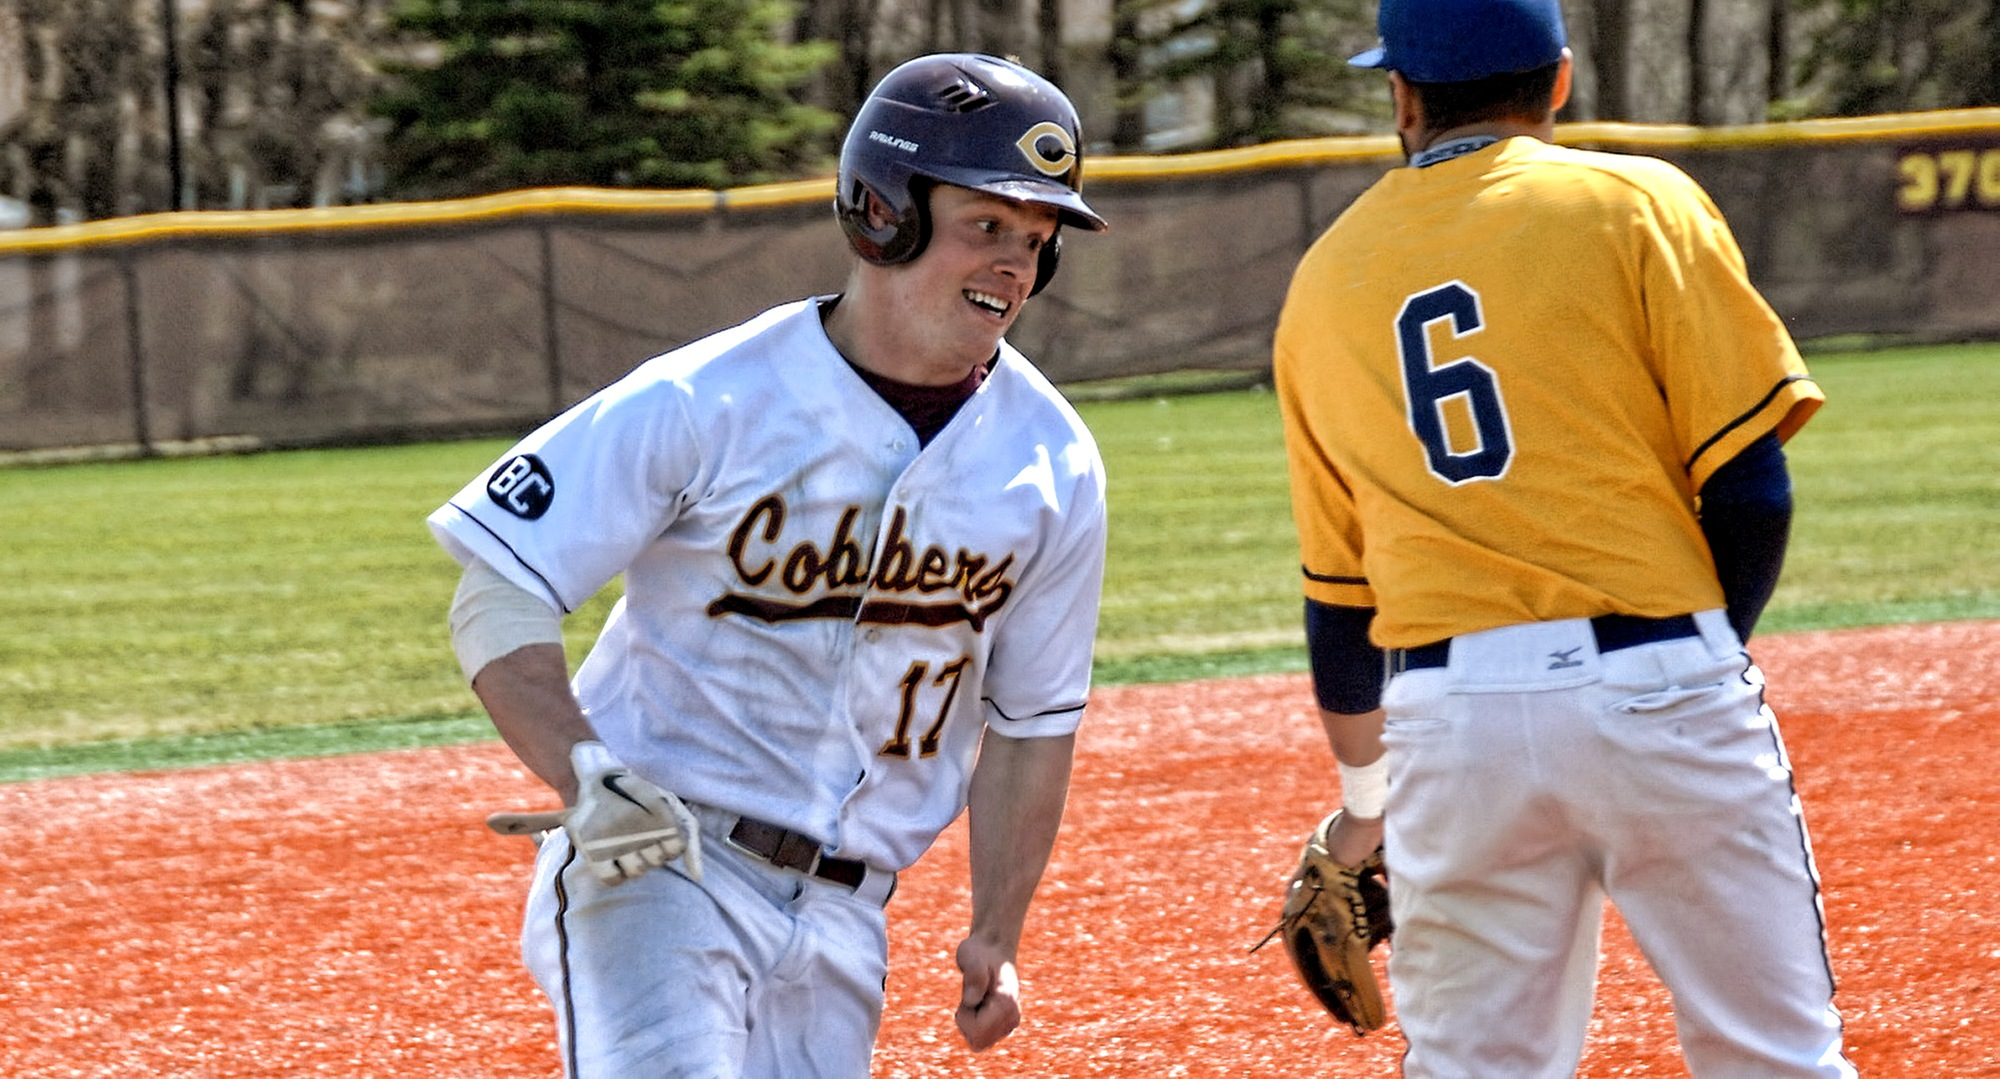 Sophomore Andy Gravdahl had a rare inside-the-park home run in the Cobbers' first of two win on Thursday. He also drove in the game-winning run in CC's 5-1 win over Gwynedd Mercy.